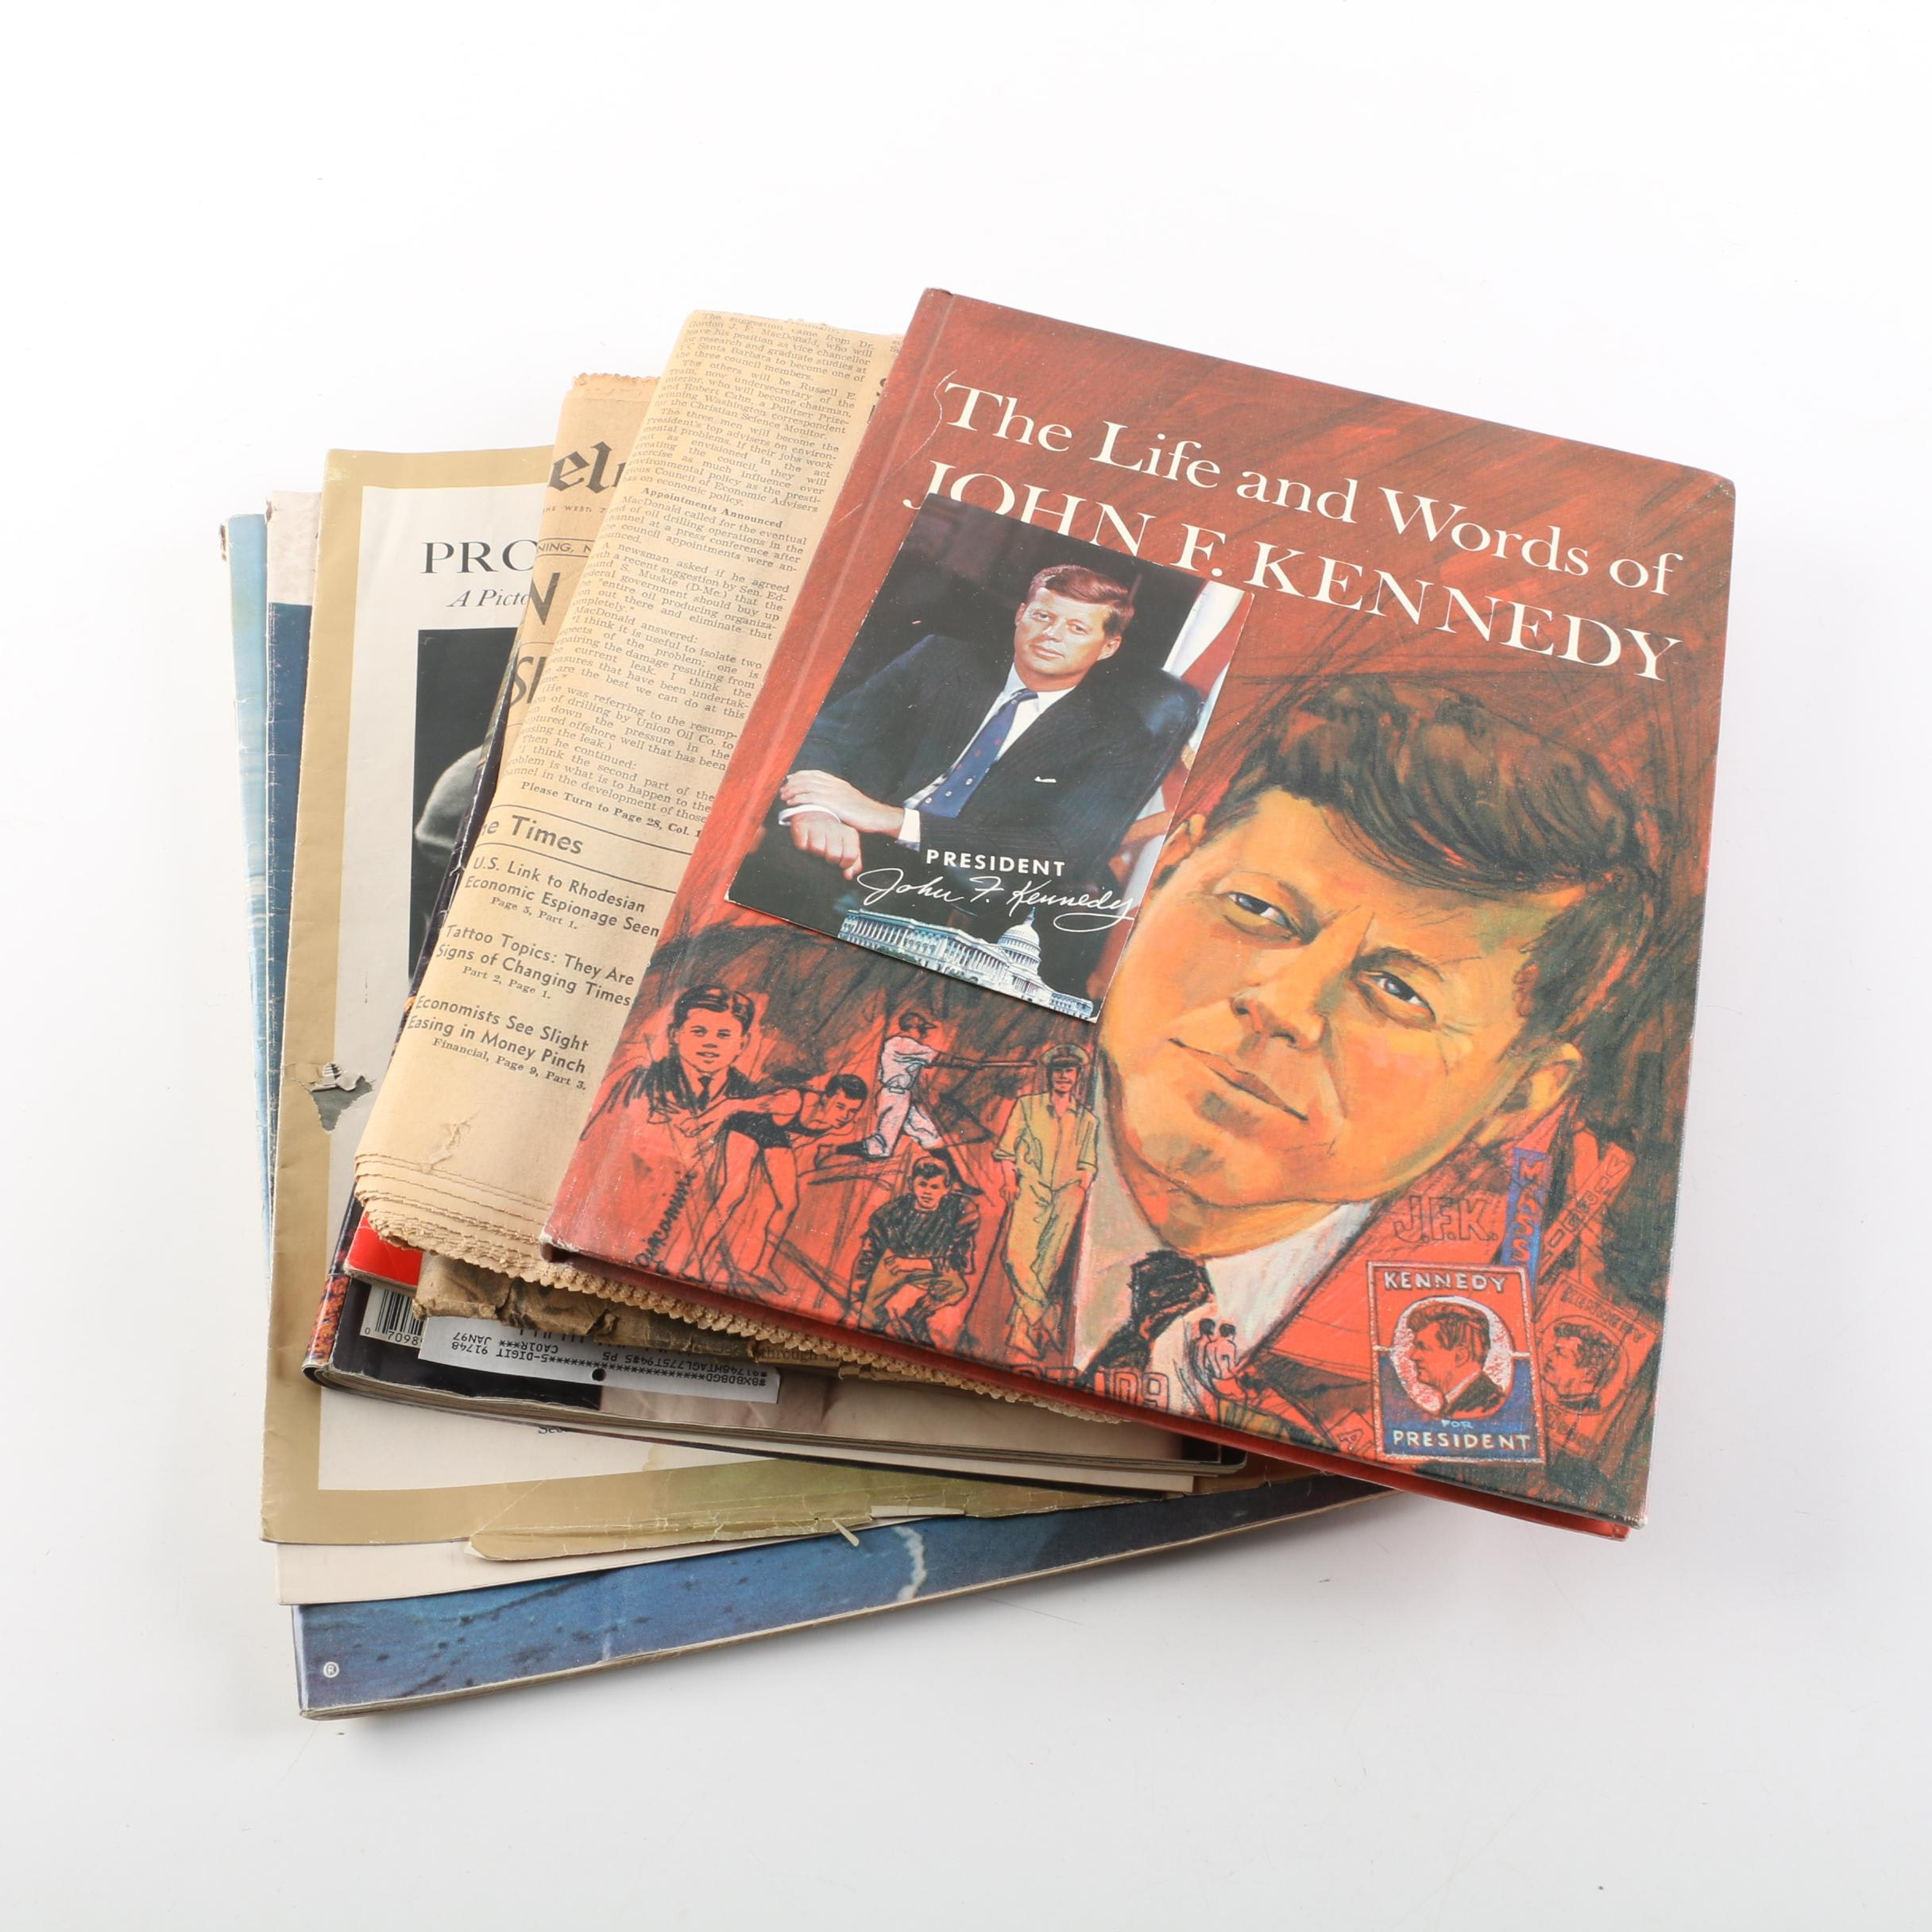 Kennedy Family Themed Books, Magazines, Newspaper Clippings and More